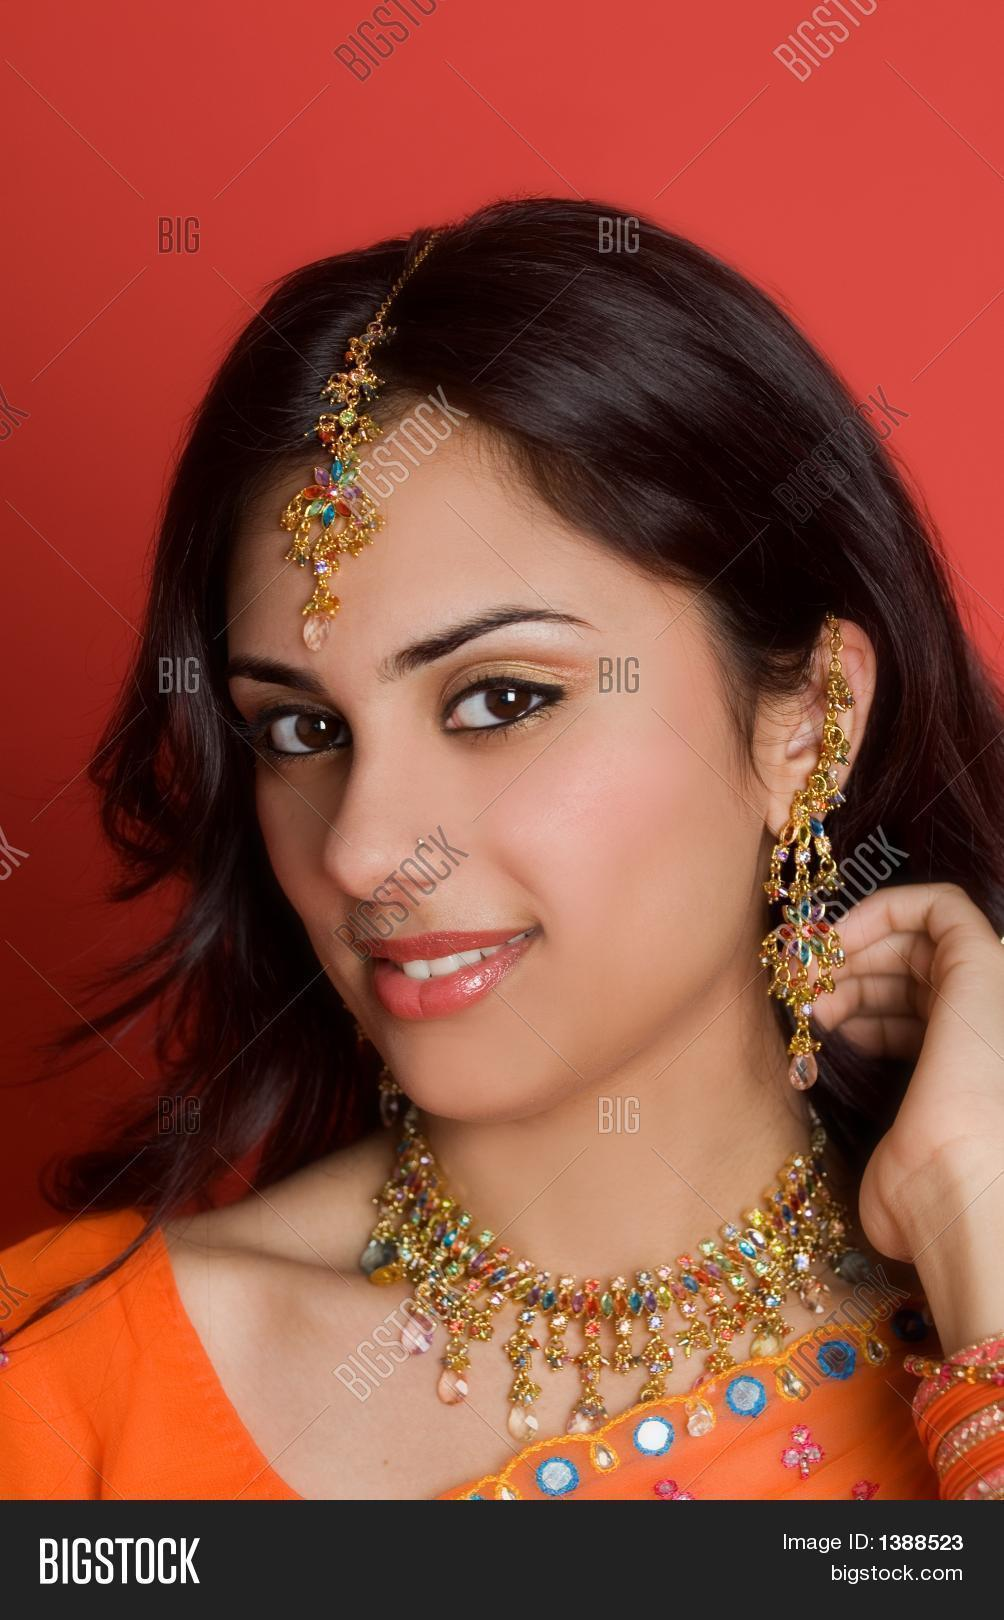 hindu single women in scottsville Hindu dating thank you for visiting our web site the top indian dating and single's website for hindus of any age, countries and sub cultures we offer you a number of dating options according to the wants and standards.